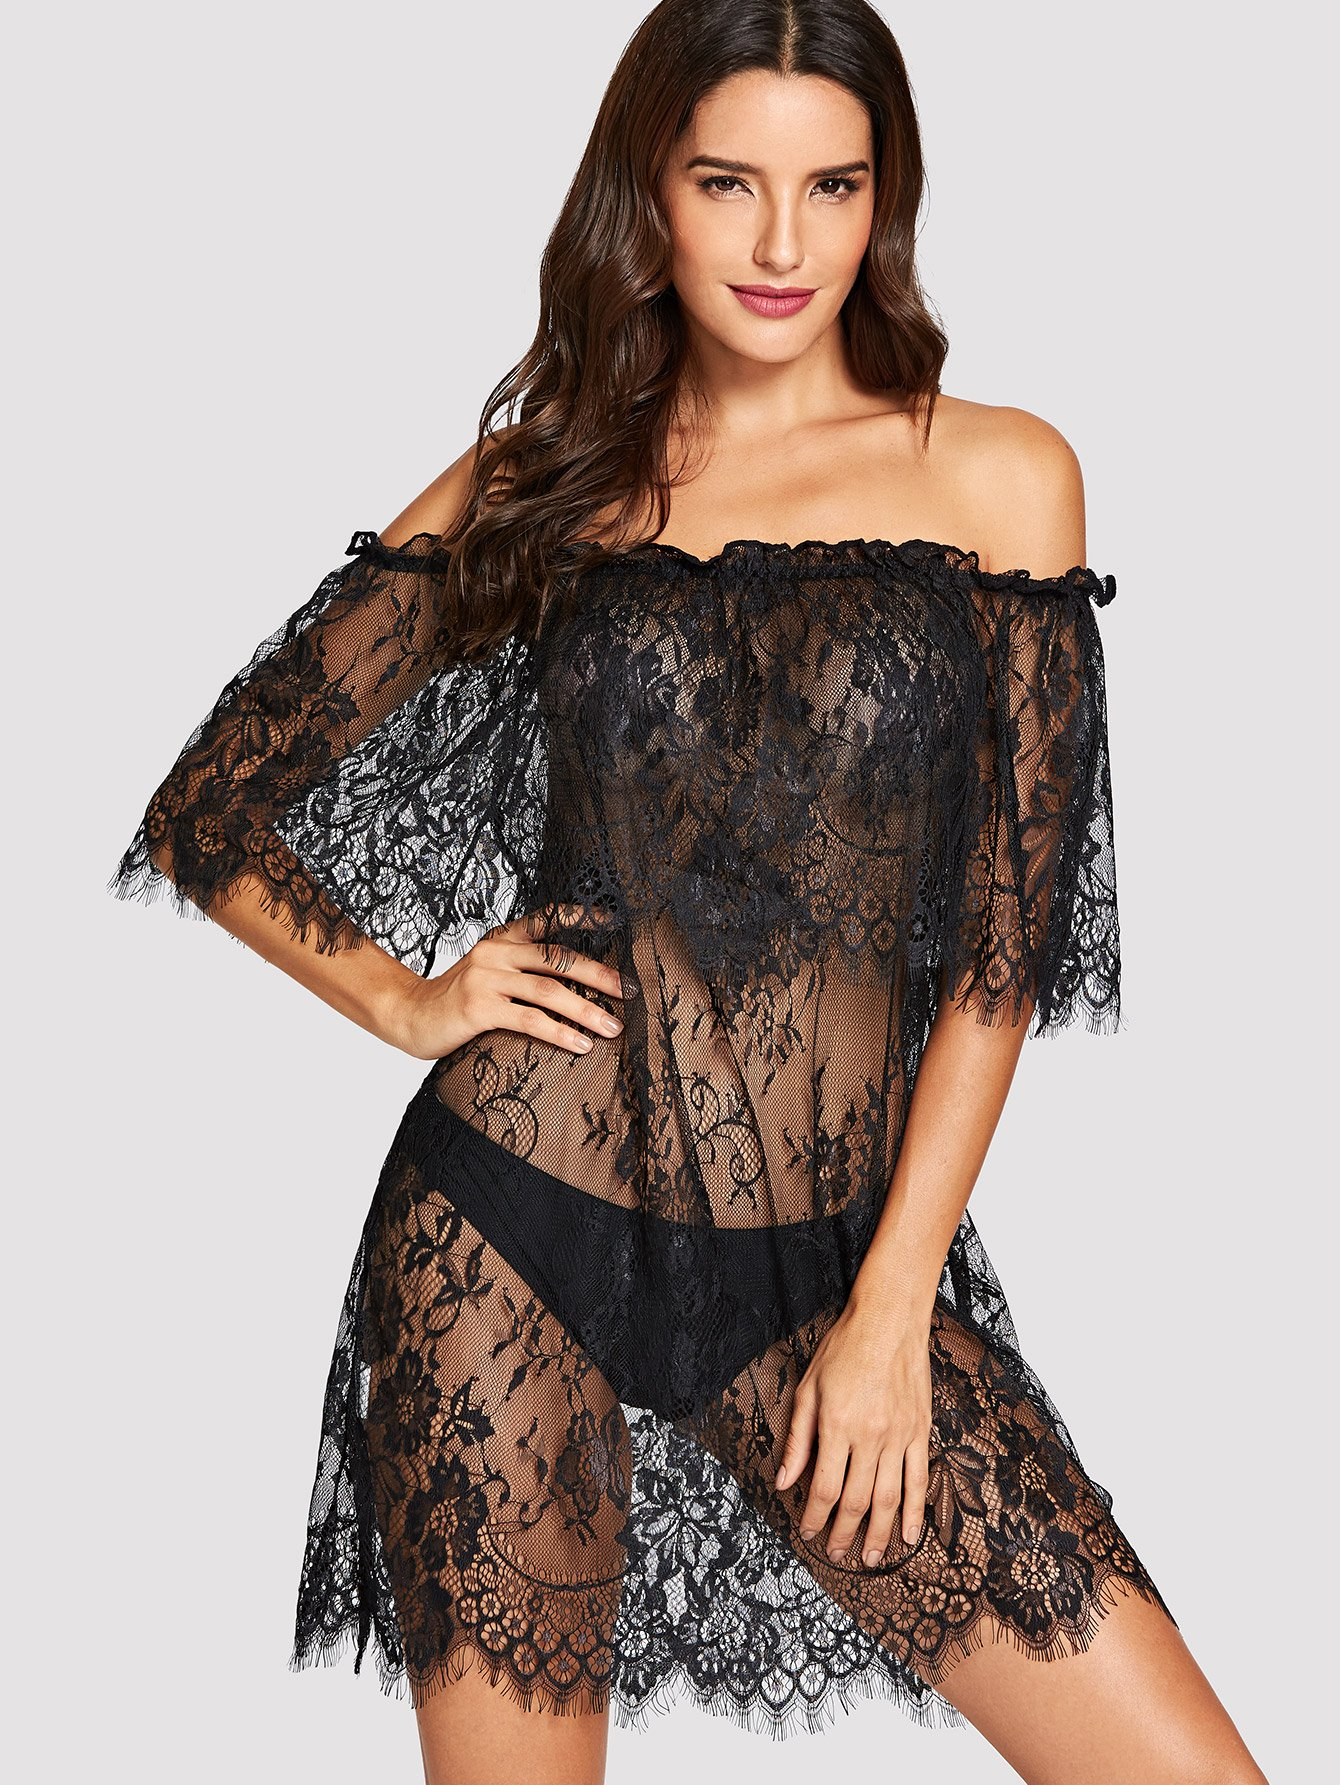 Off The Shoulder Floral Lace Dress With Thong, Juliana, Romwe, Black  - buy with discount